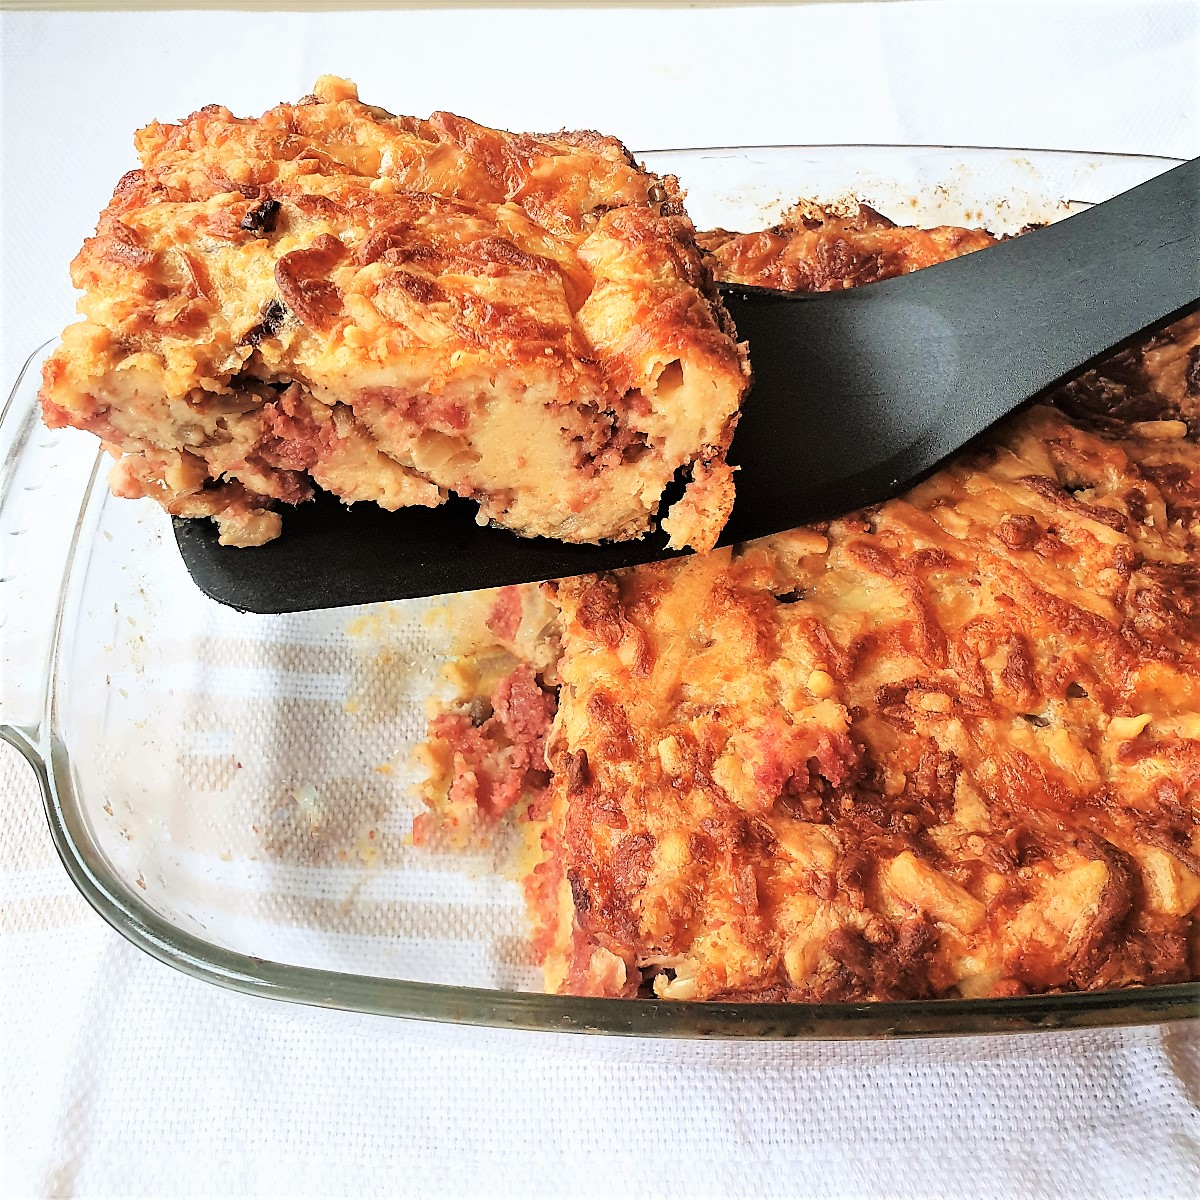 A slice of bully beef quiche being lifted from the baking dish.